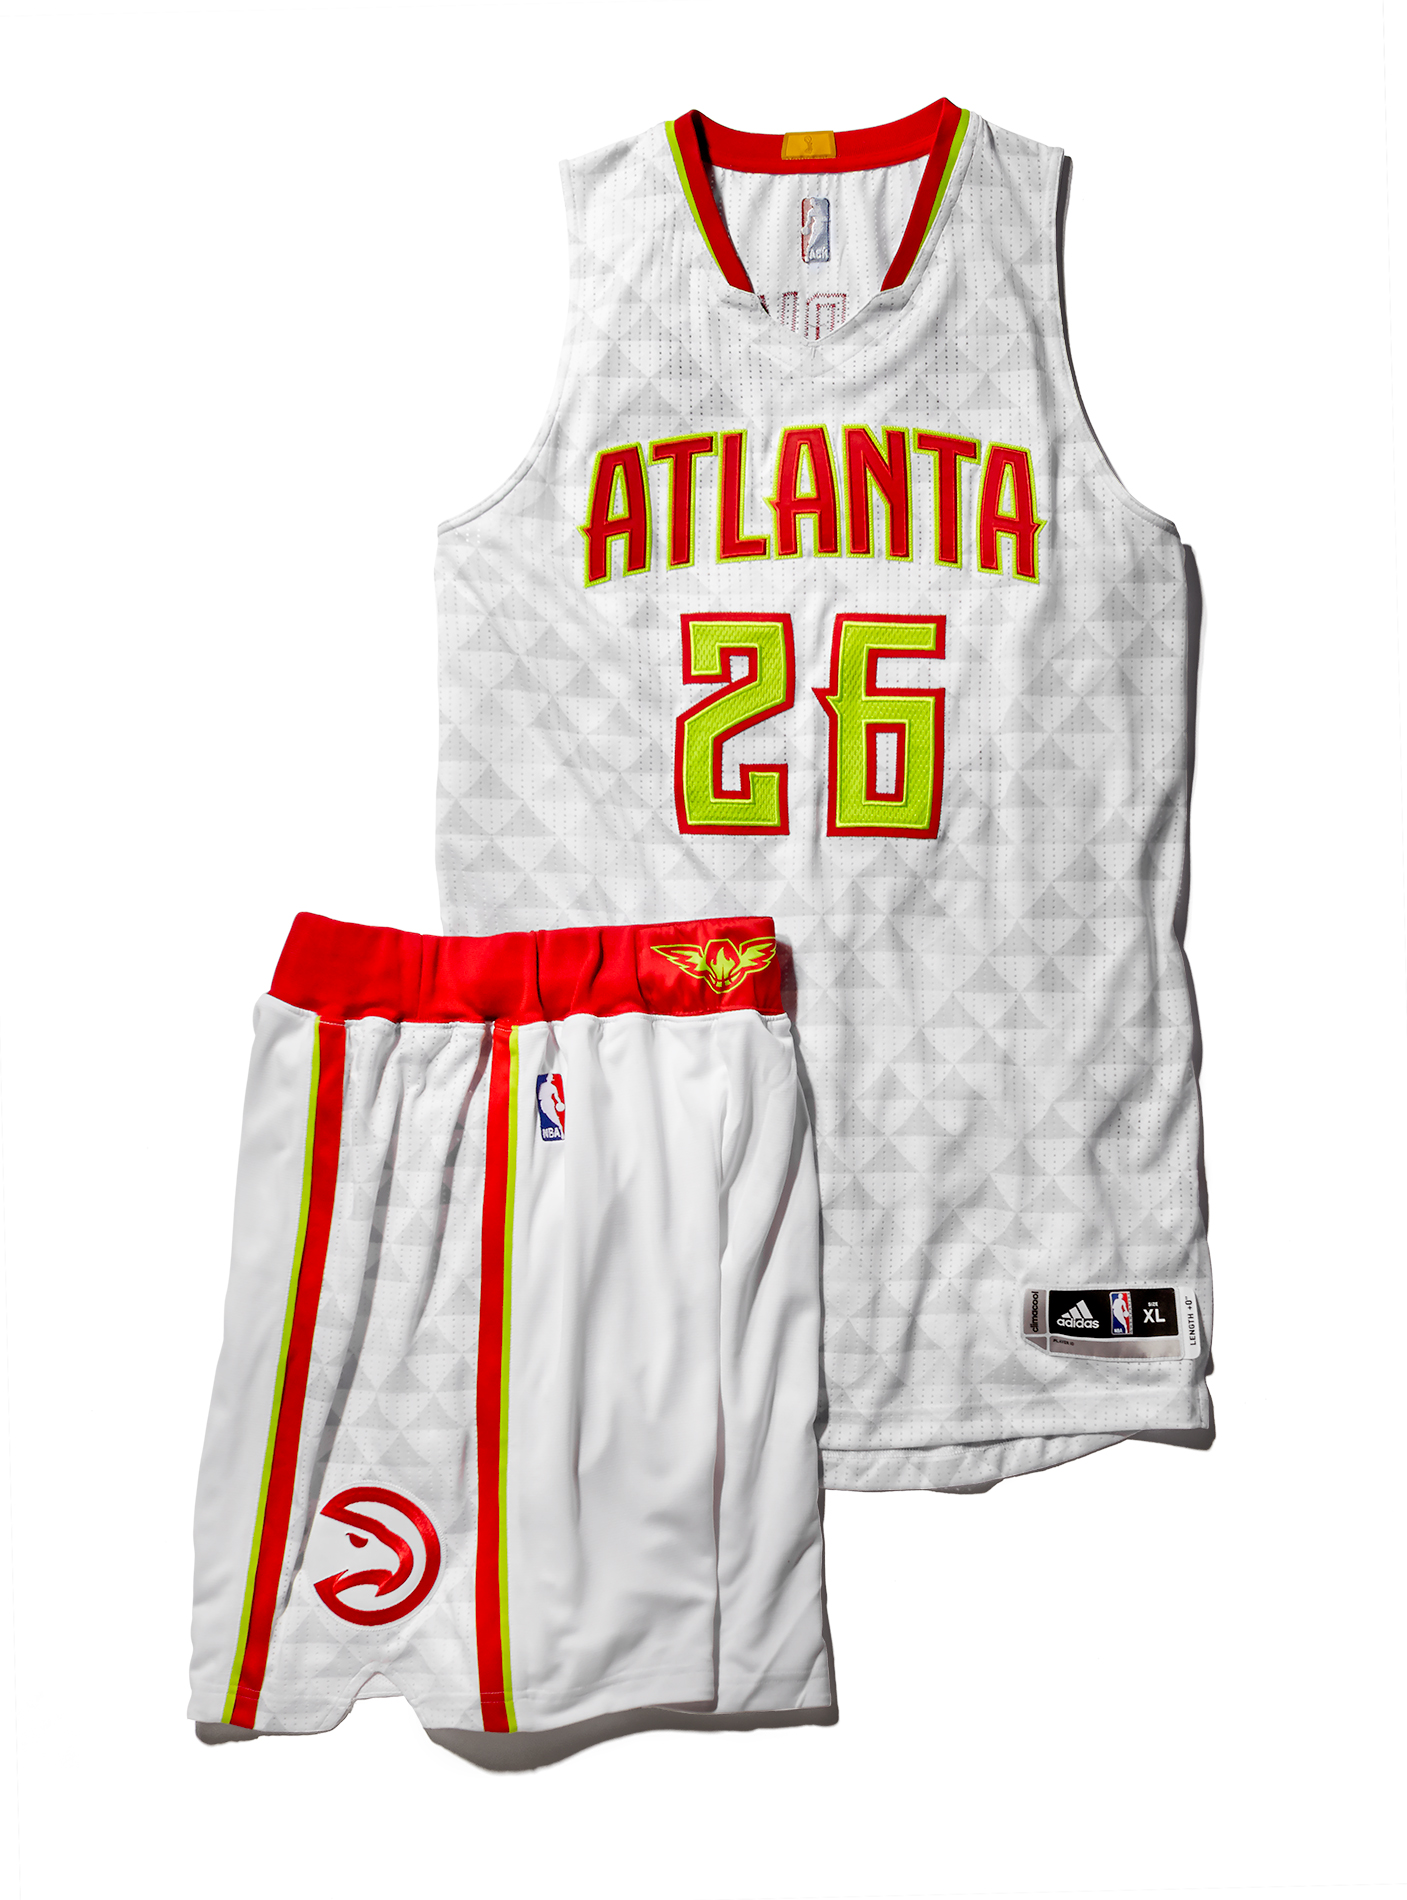 74ecf3703bc Atlanta Hawks usher in a new era with uniform unveiling - Peachtree ...